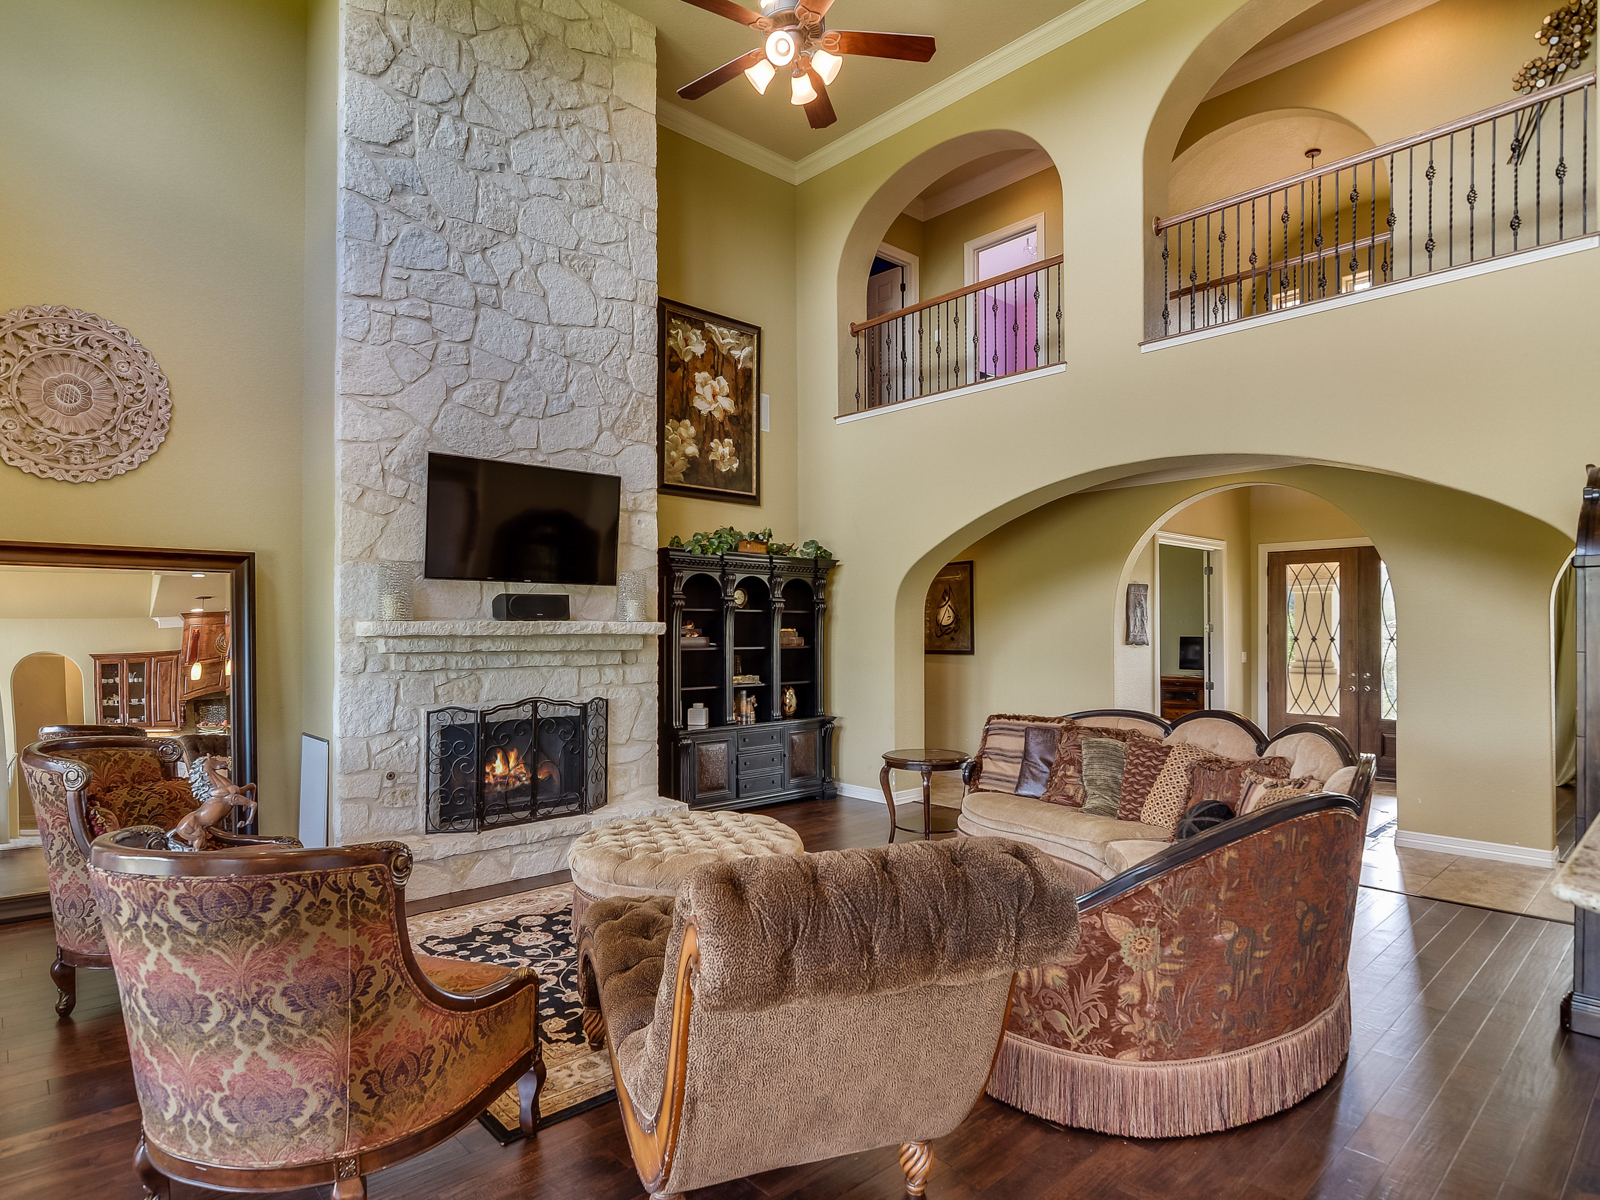 Additional photo for property listing at Stunning Mediterranean Home in Helotes 322 Santa Domingo Helotes, Texas 78023 Estados Unidos